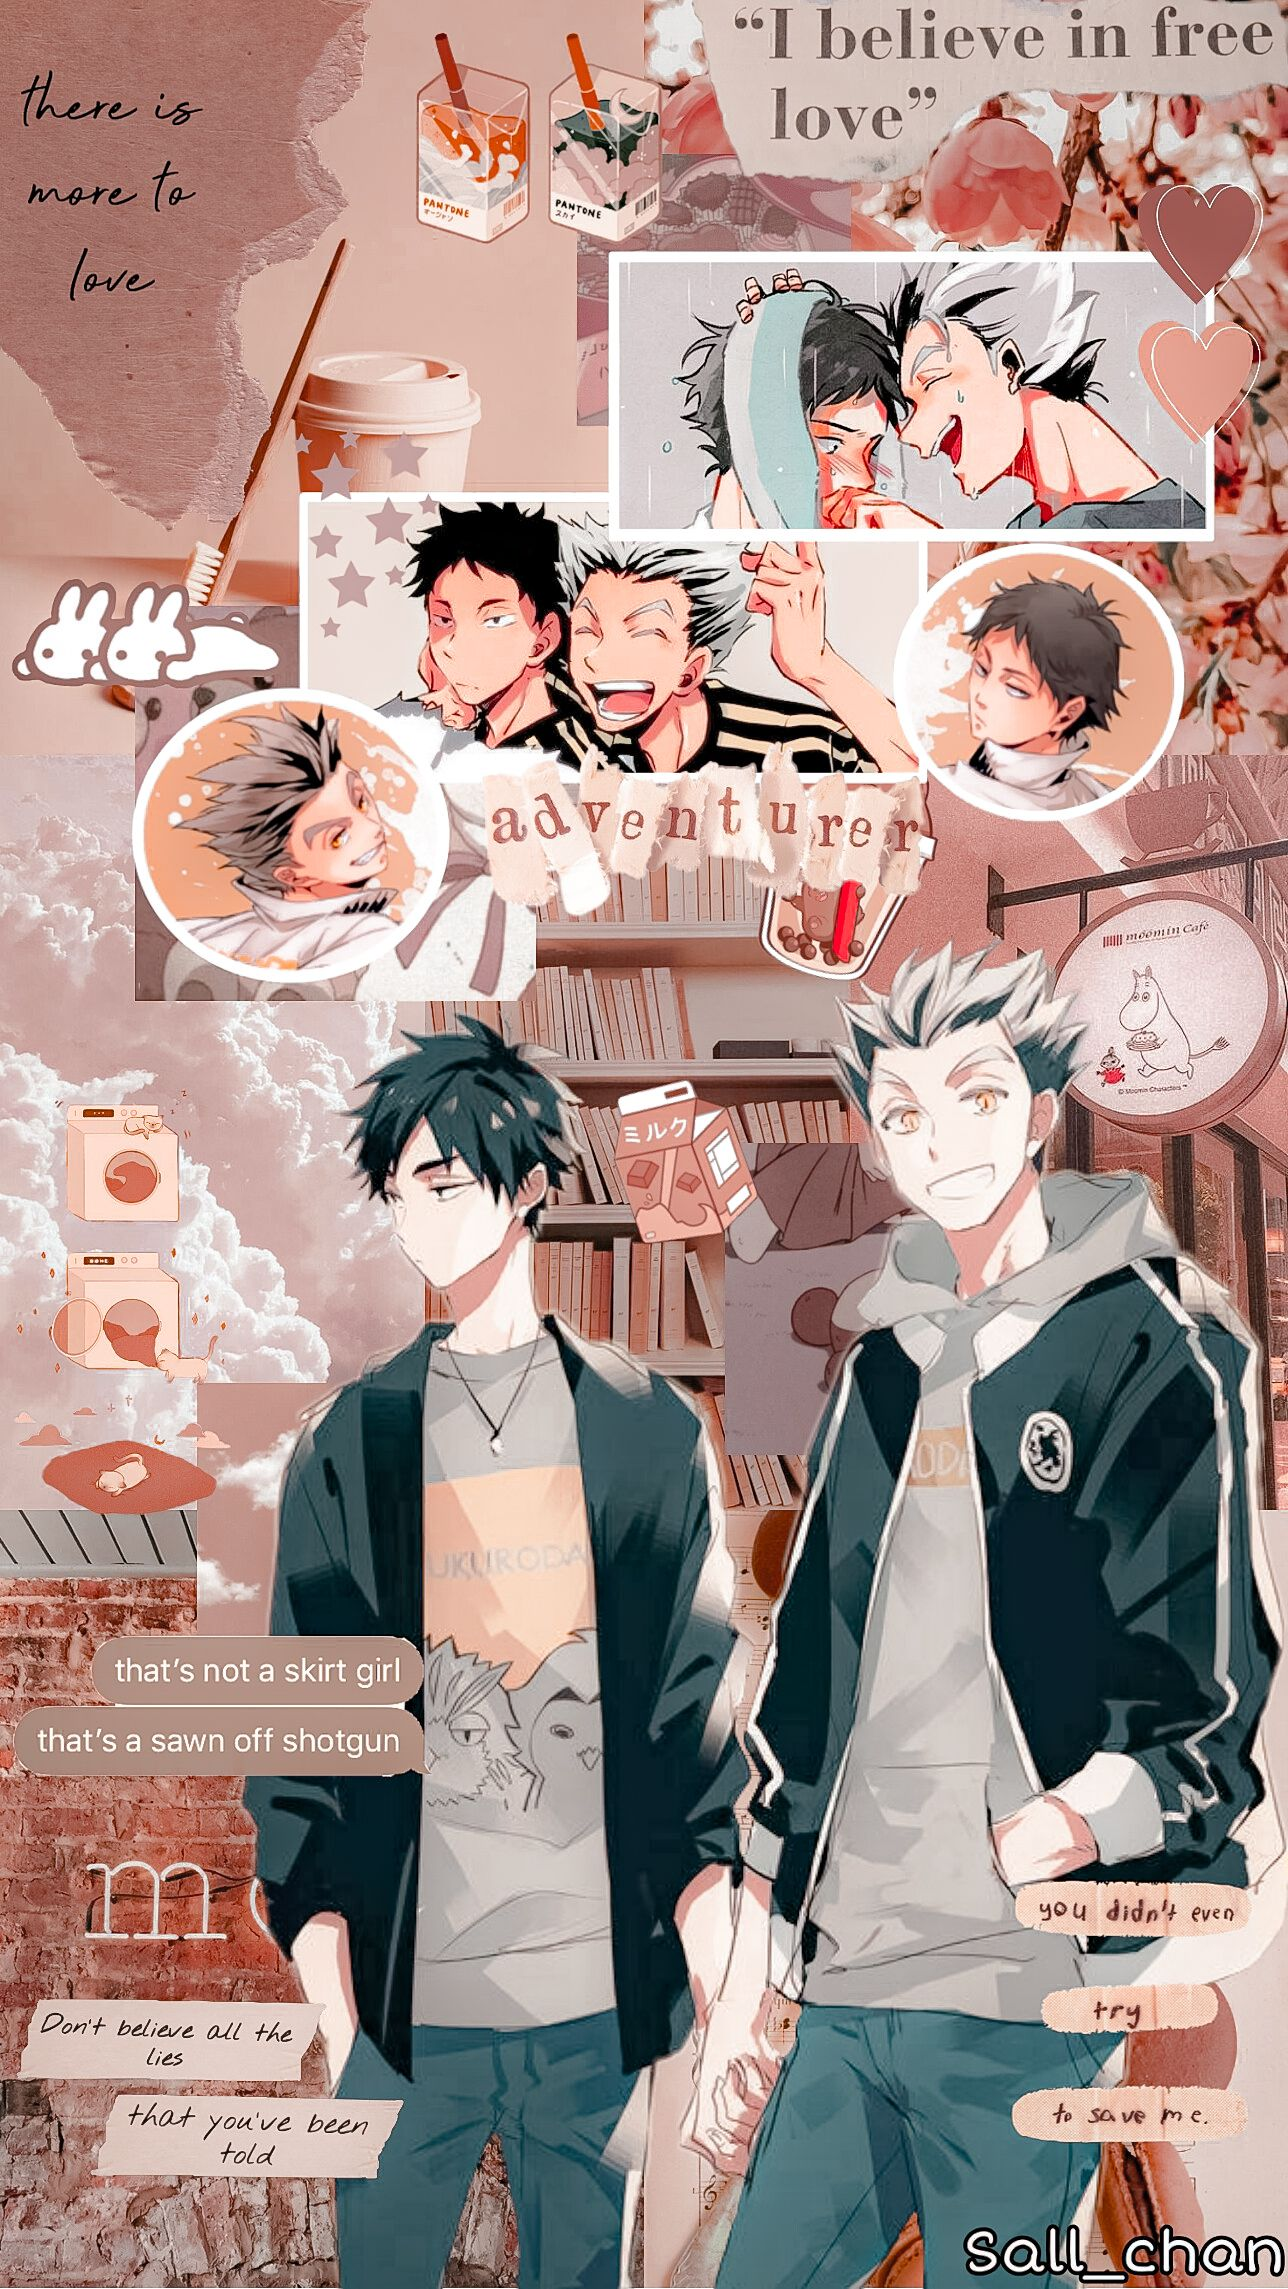 Anime Wallpaper Bokuaka Haikyuu Aesthetic Wallpaper In 2020 Haikyuu Anime Anime Wallpaper Iphone Cute Anime Wallpaper